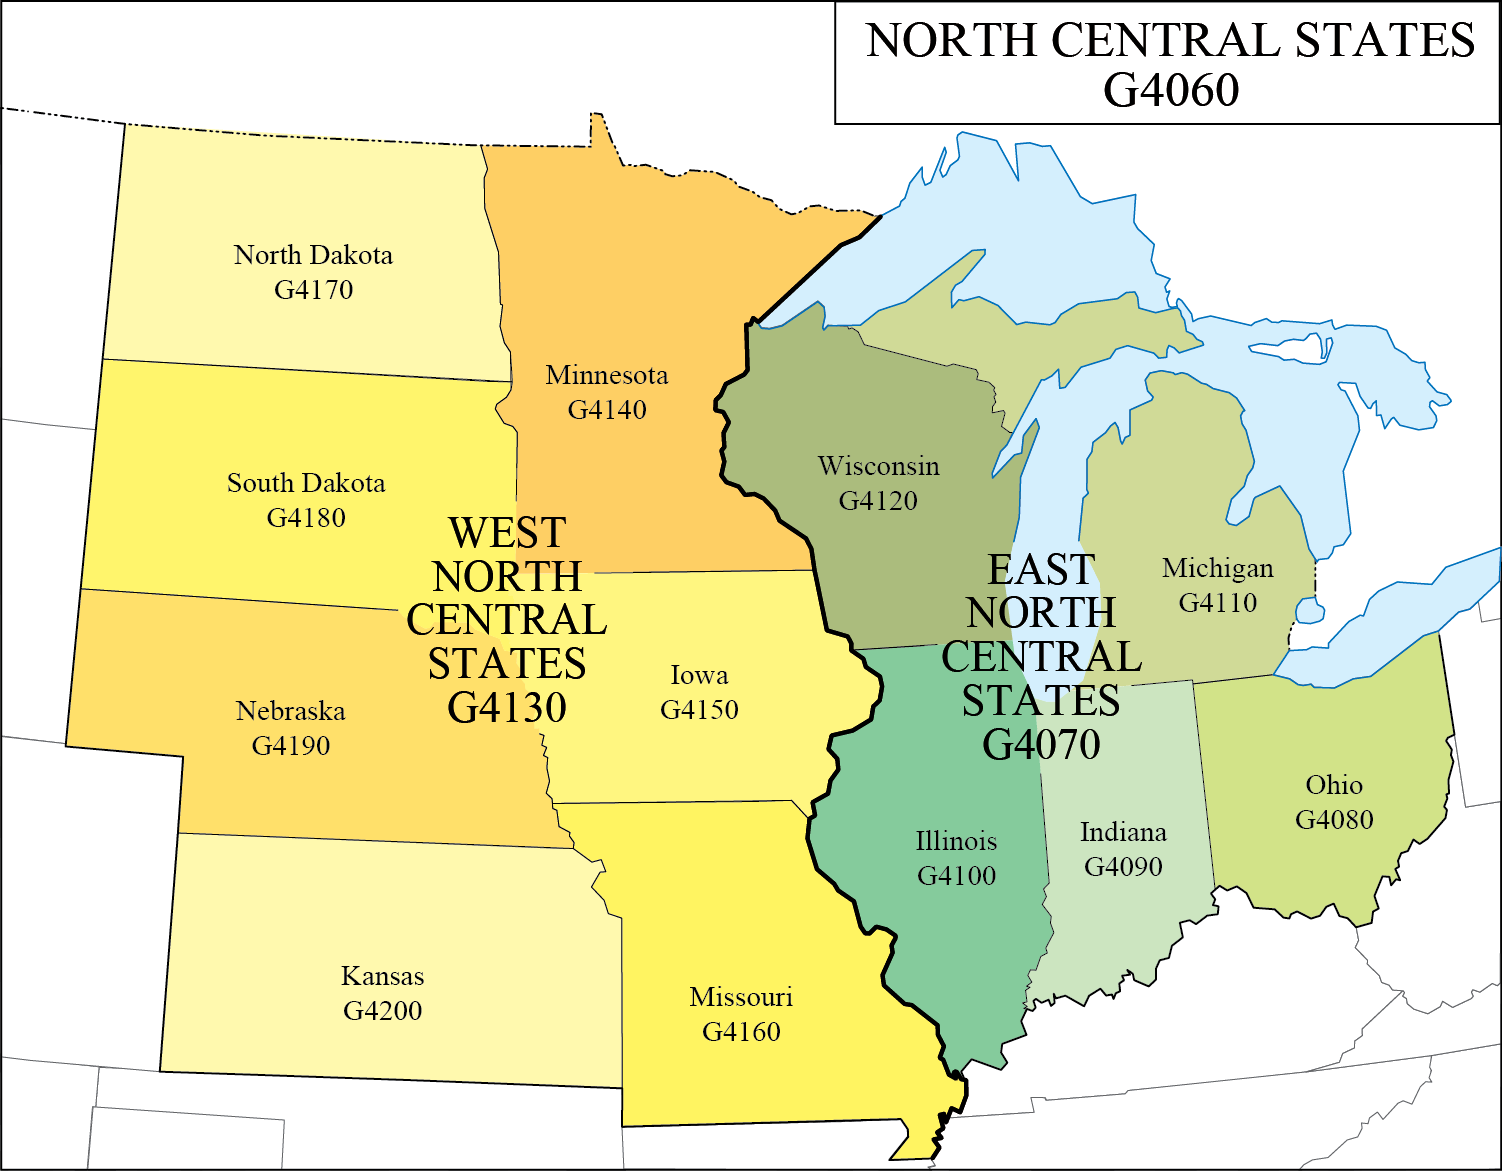 Central State Map – Partistunisie on map of north east illinois, map of north central india, map of north queens, road map of central illinois, map of north central states, map of central illinois towns, map of north central phoenix, cities in central illinois, map of north central college, map of north shreveport, map of north central mexico, map of north puerto rico, map of north milwaukee, map of illinois central college, central plains illinois, map of north central florida, map of east central illinois, map of north west illinois, west central illinois, map of central texas counties,